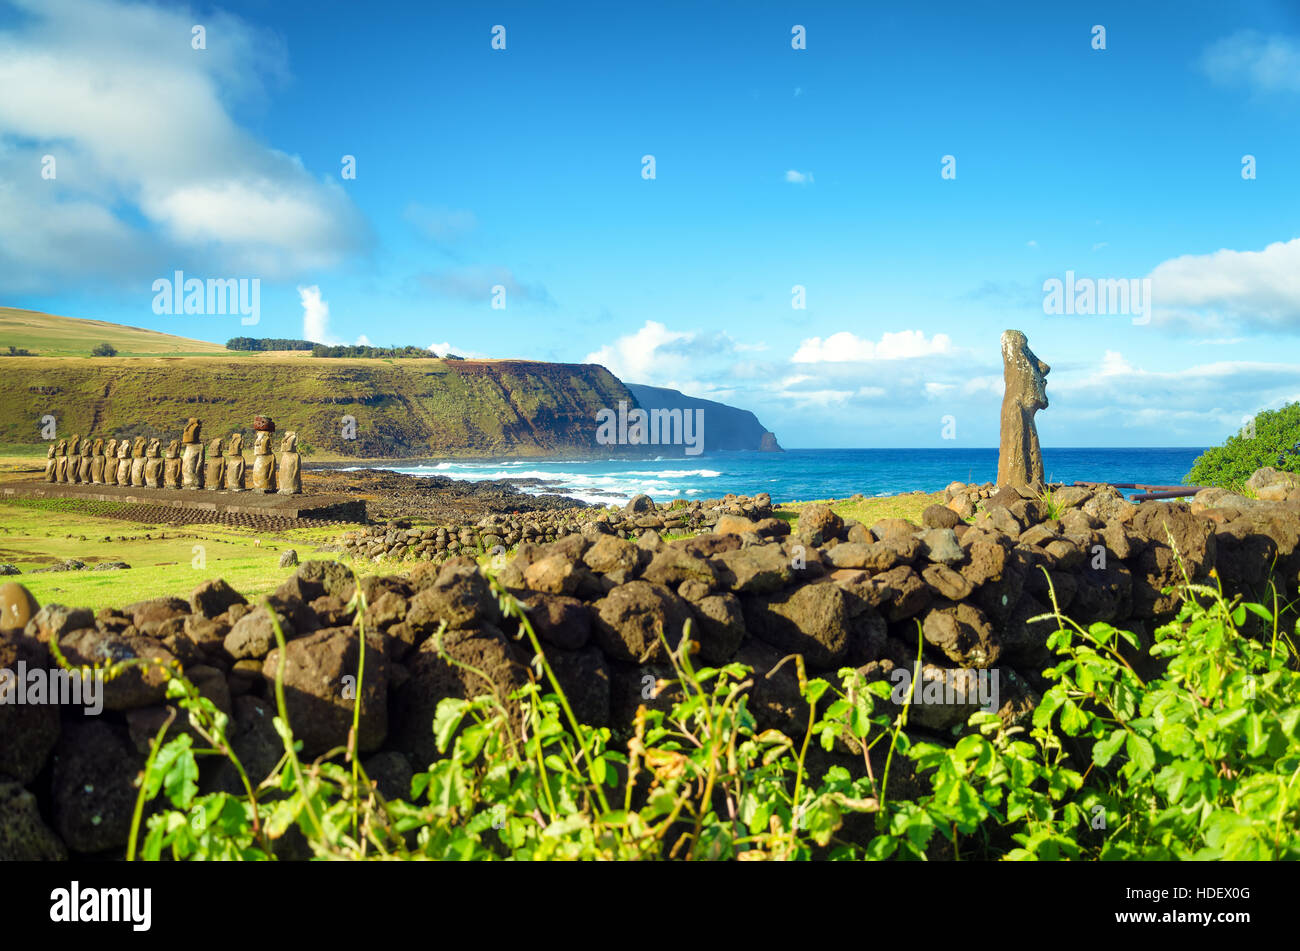 Stunning view of Moai and Pacific Ocean on Easter Island in Chile - Stock Image